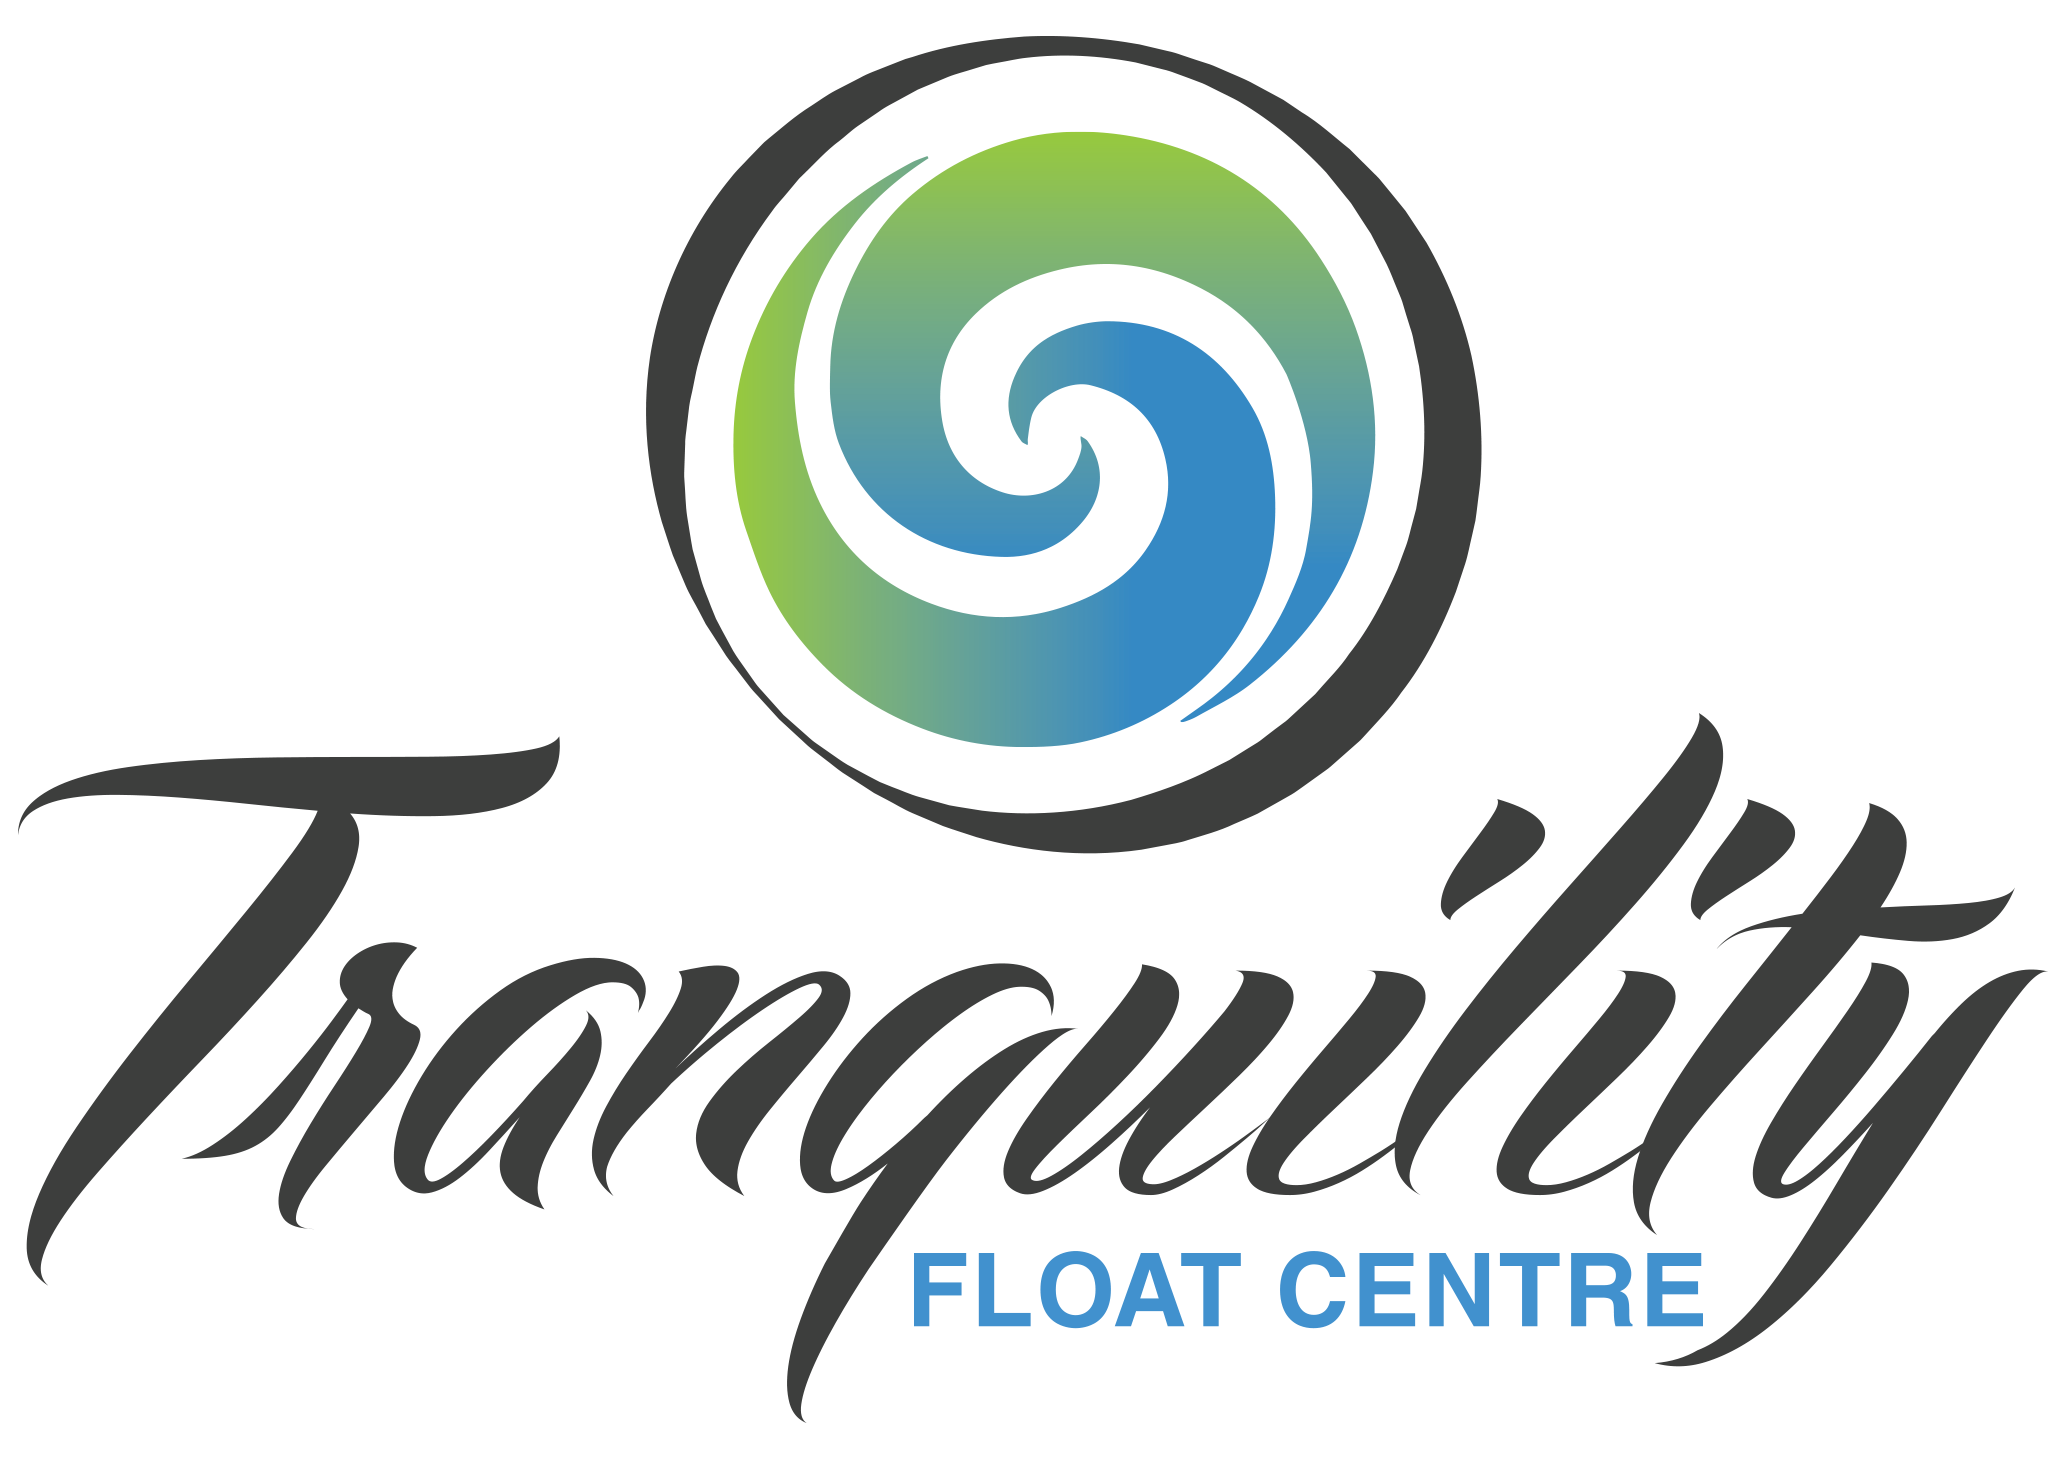 Home Tranquility Float Centre Lethbridge Alberta